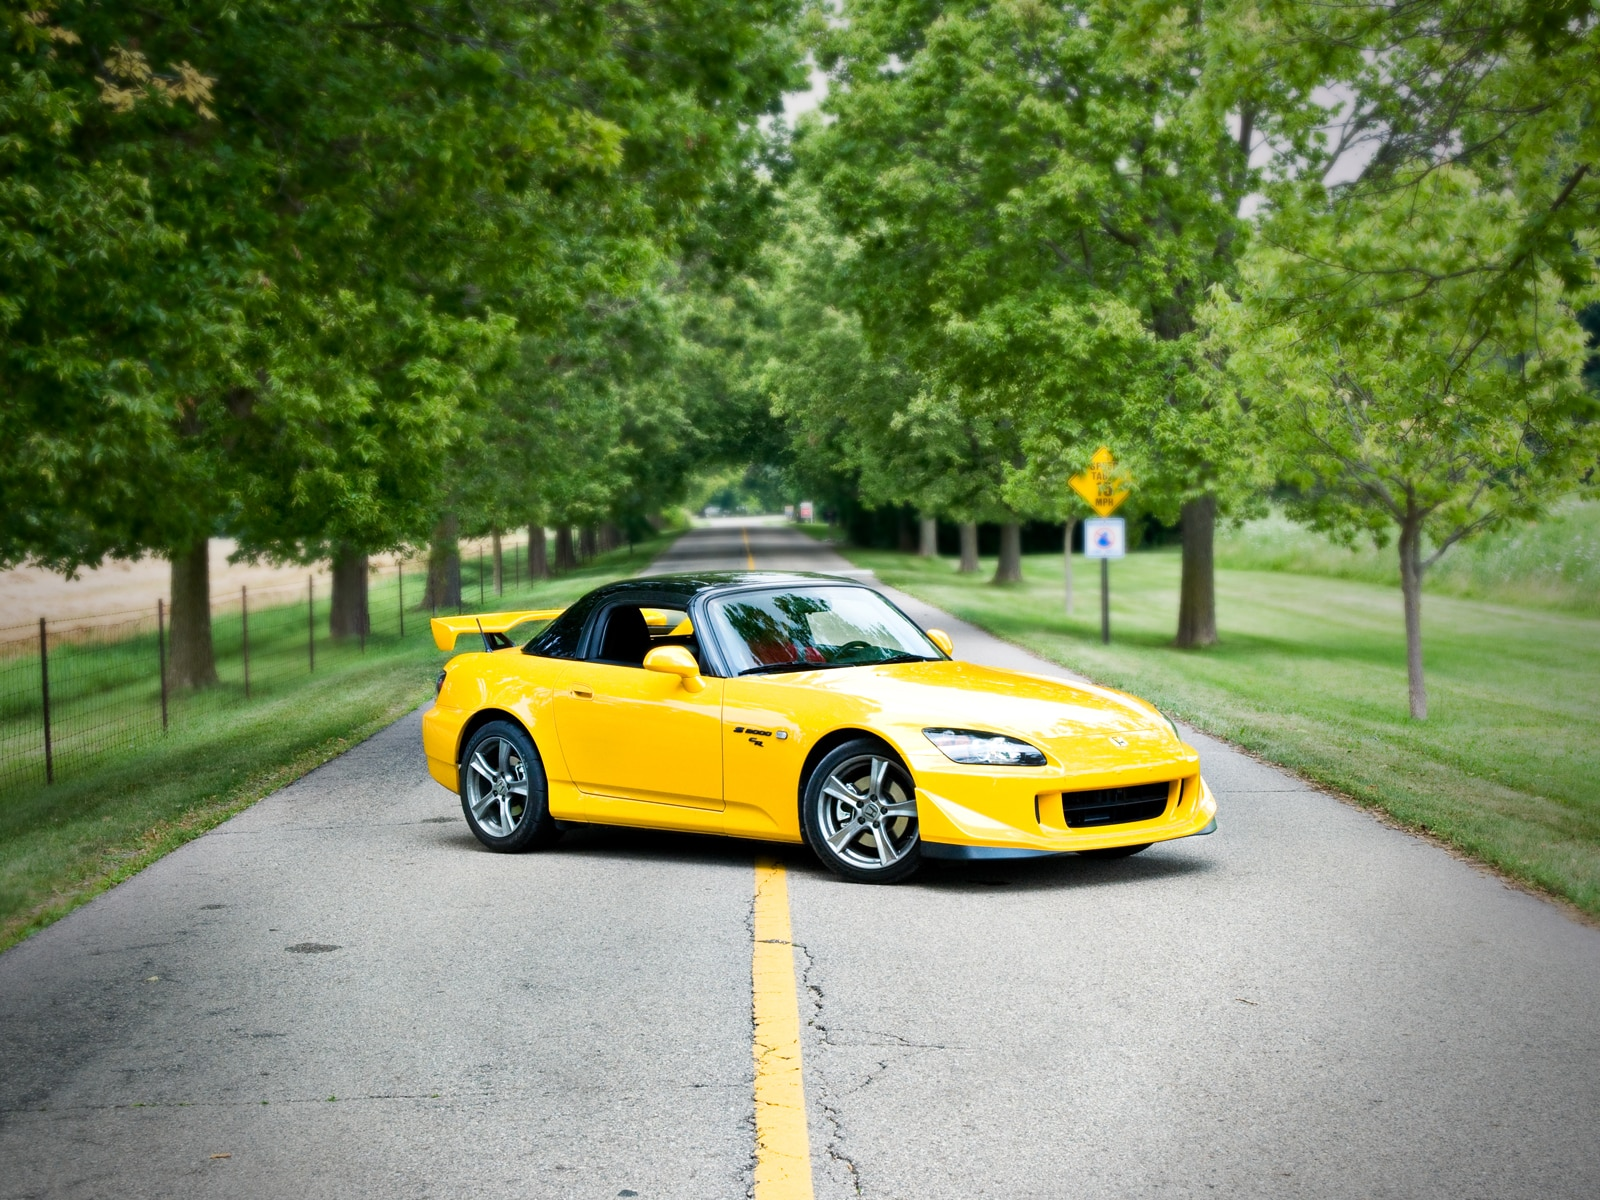 Amazing 2009 Honda S2000 CR. /5. Advertisement. To Skip. 1|5